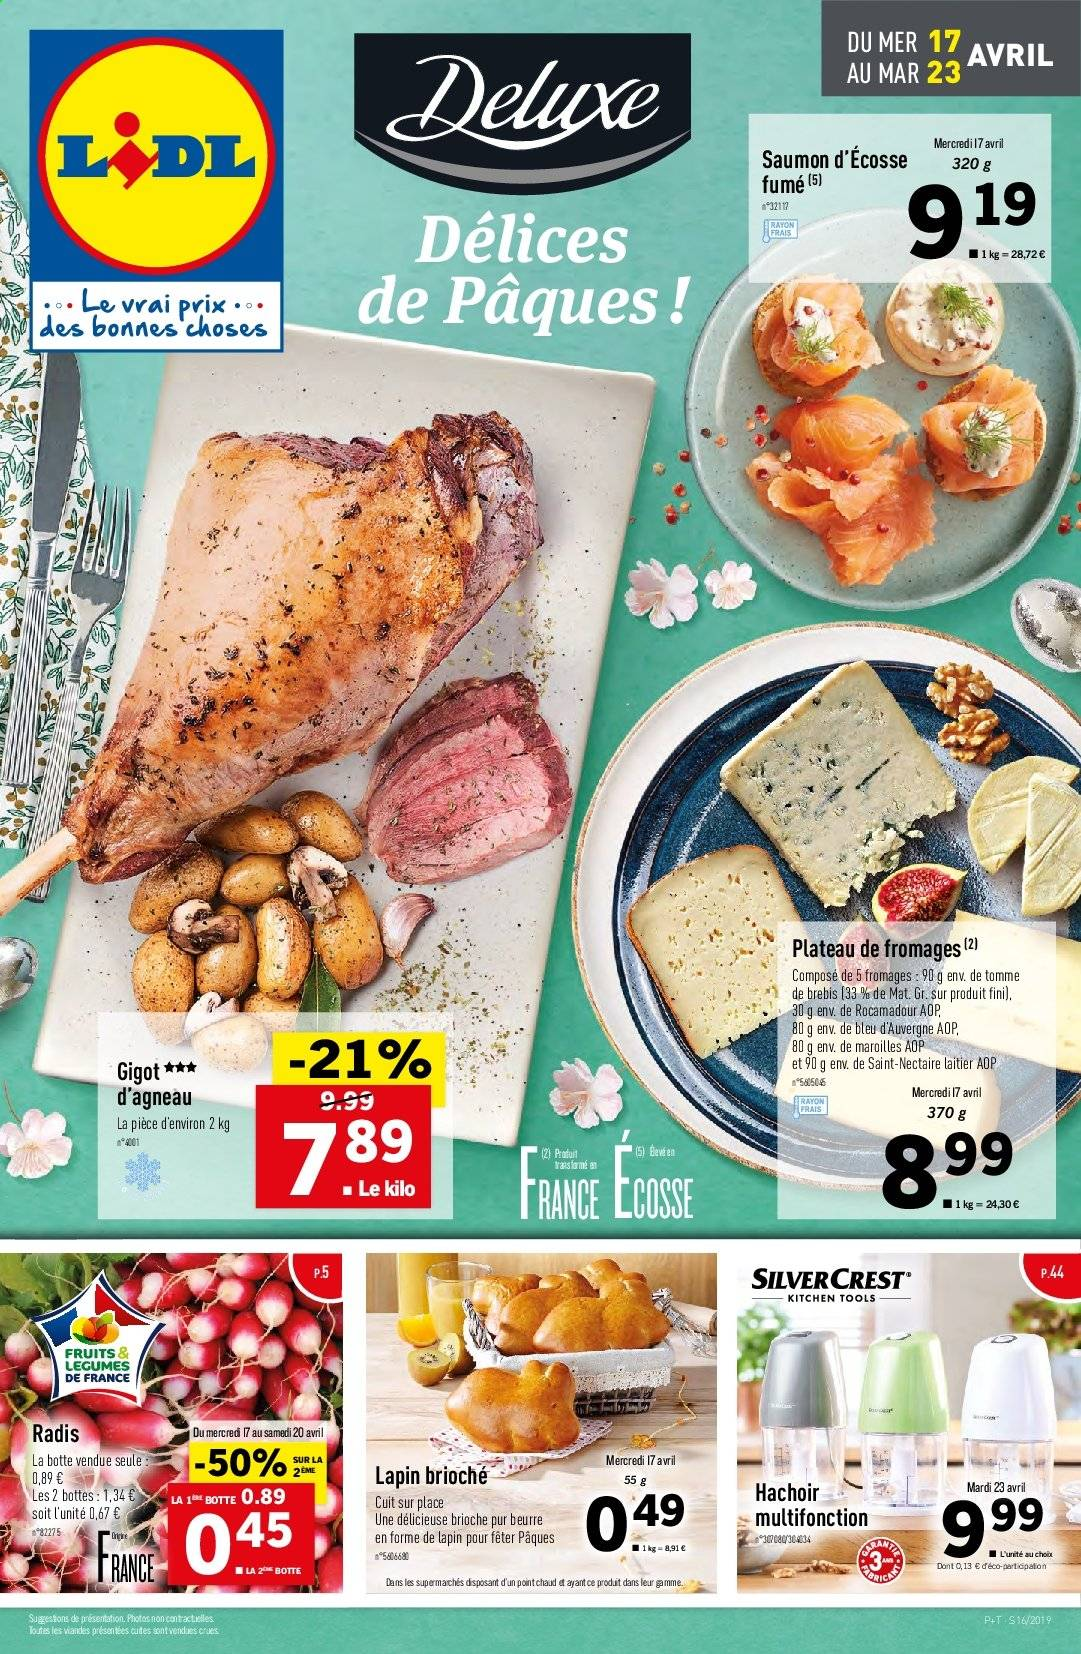 Catalogue Lidl - 17.04.2019 - 23.04.2019. Page 1.